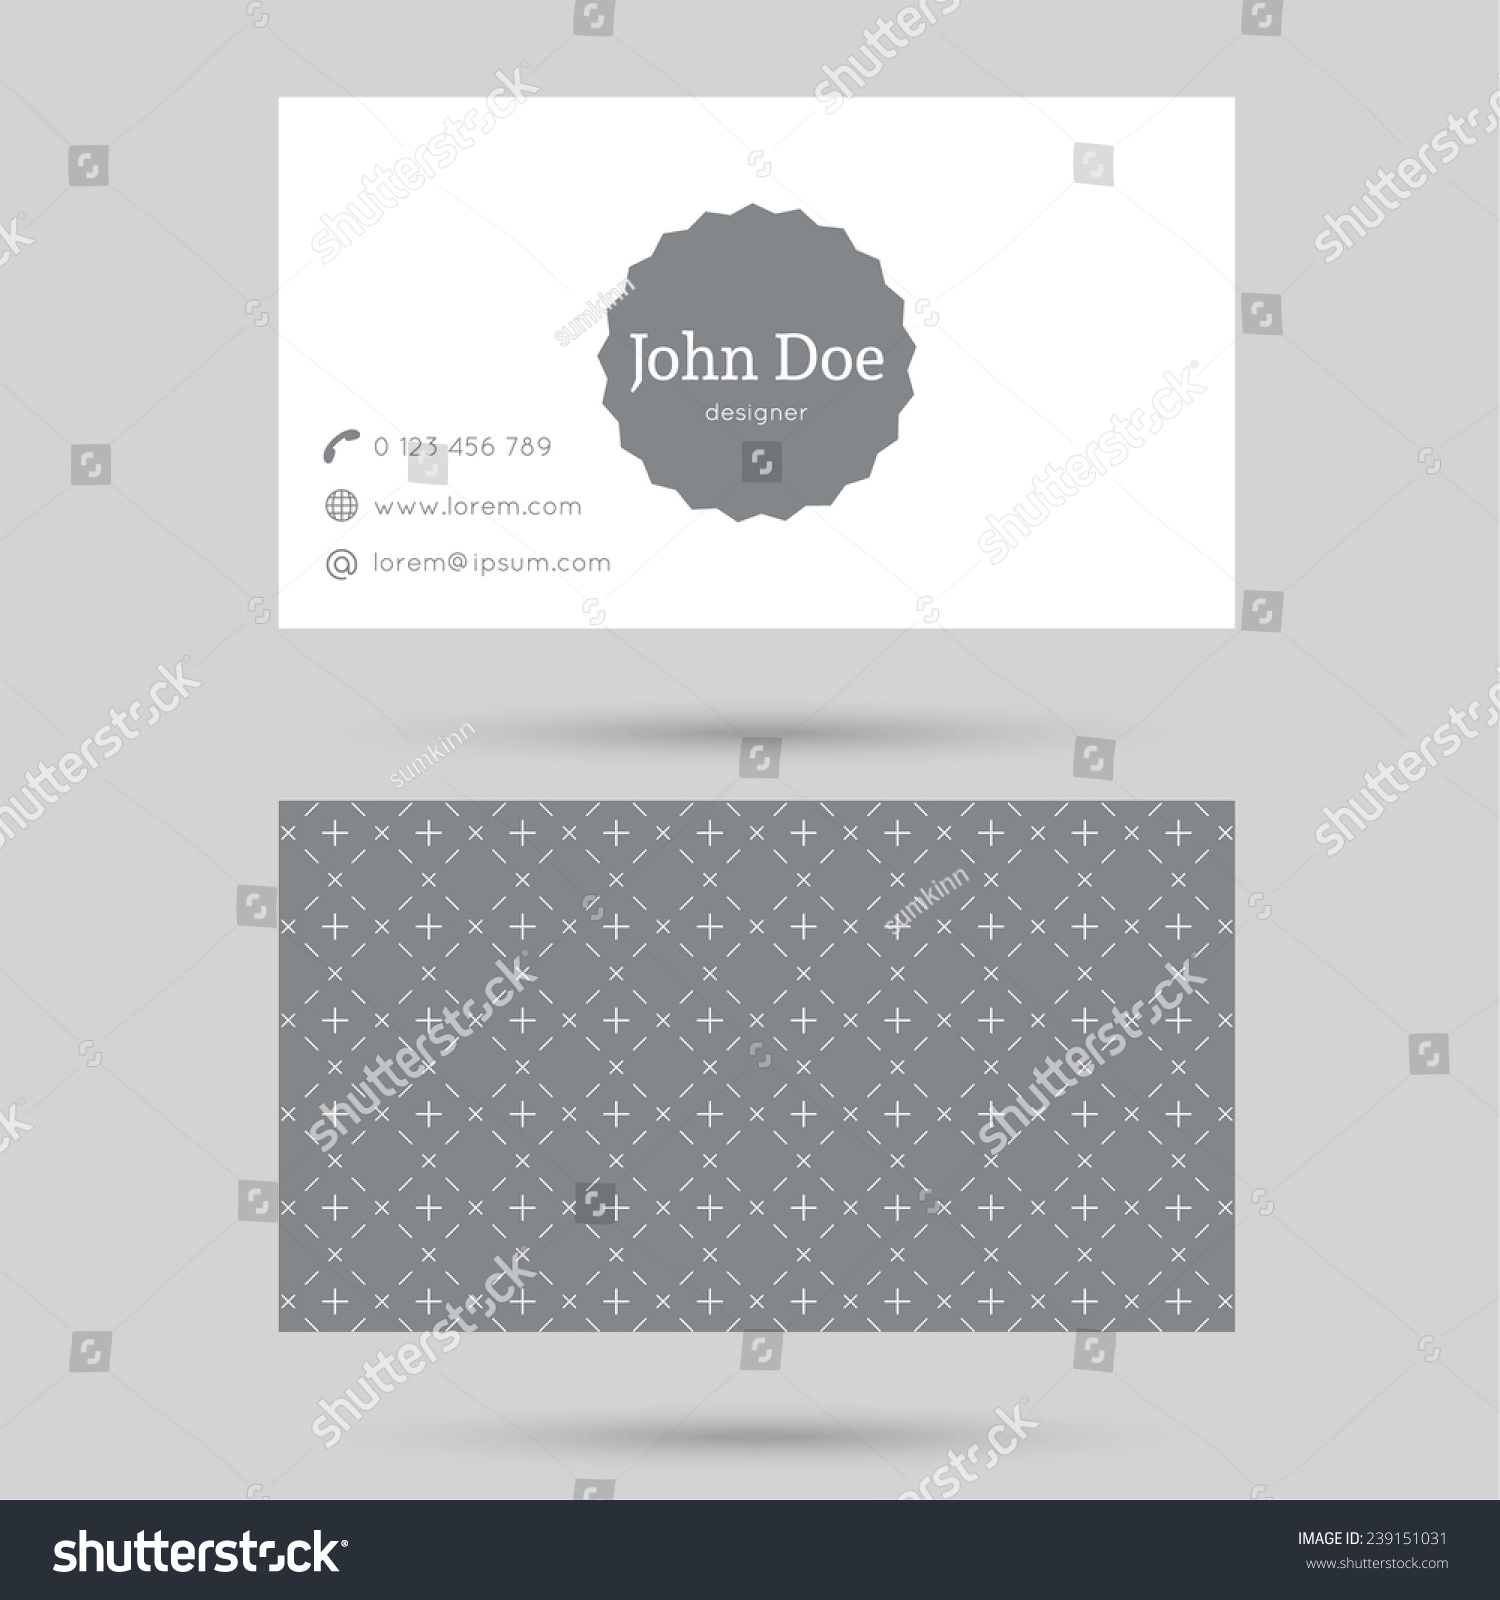 Trendy Business Card Template Vintage Label Stock Vector 239151031 ...